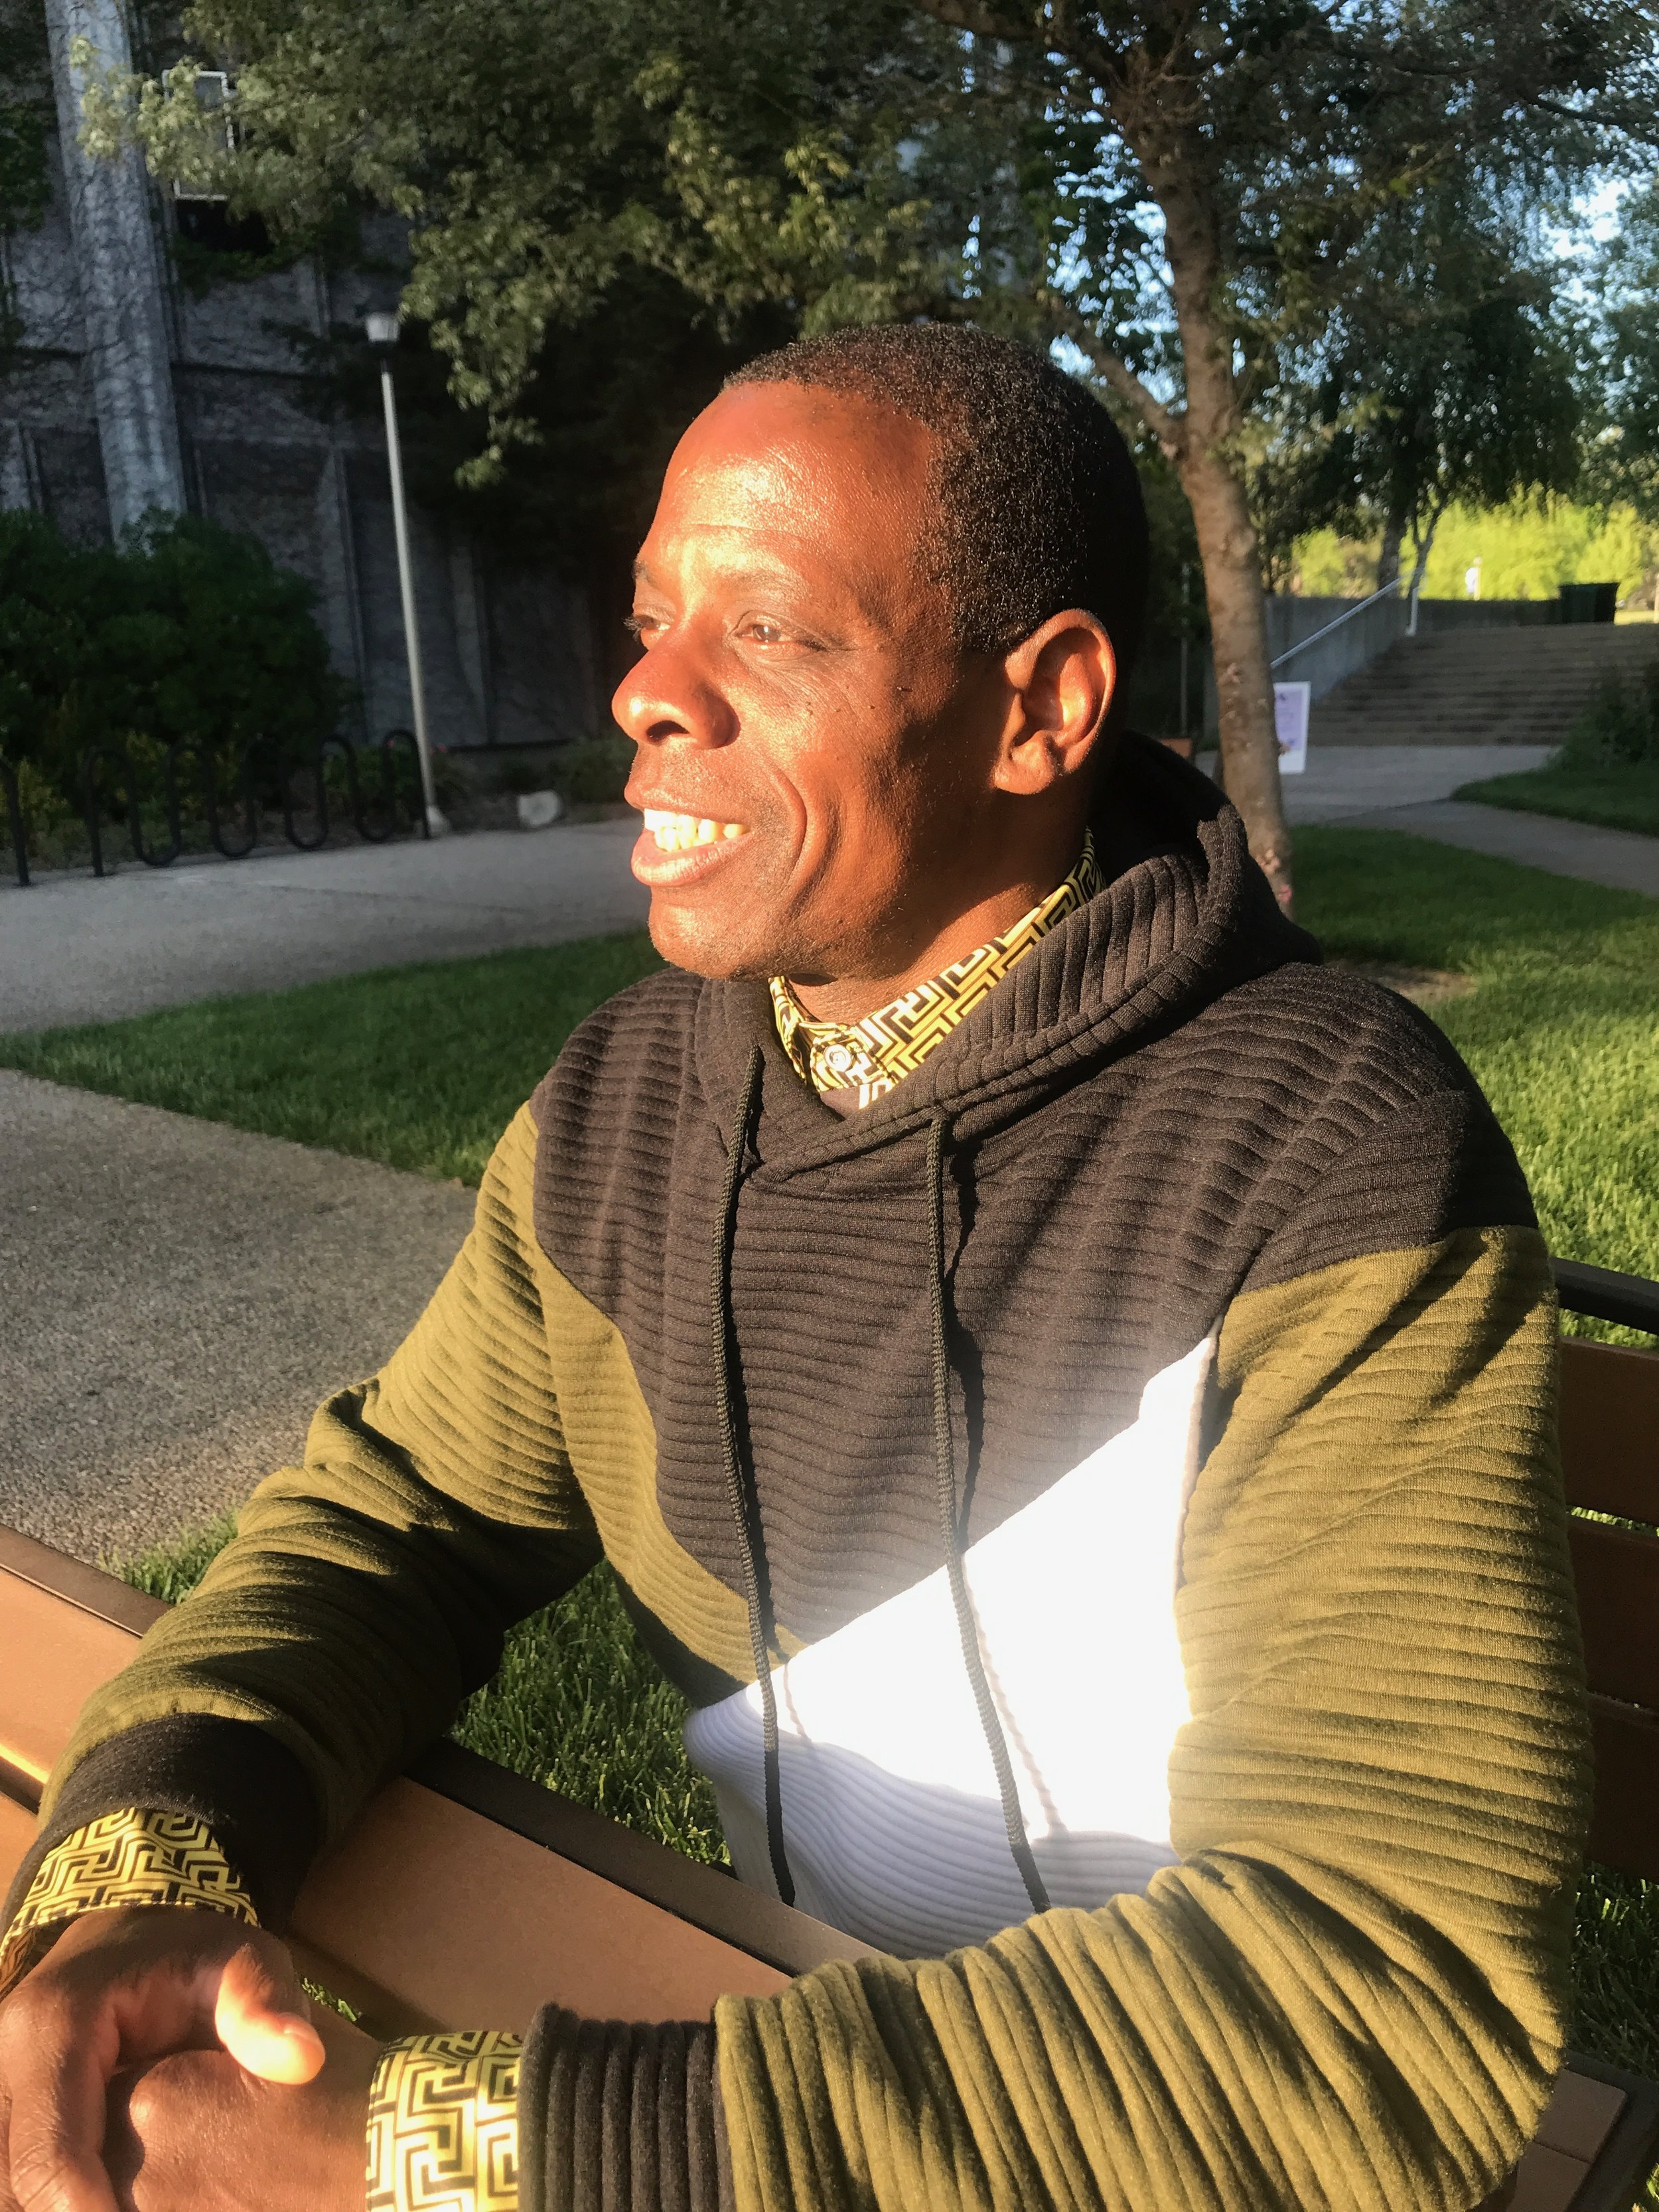 Bradford Haith Jr., seen above, has been walking for the past 13 years, often refusing rides along the way.